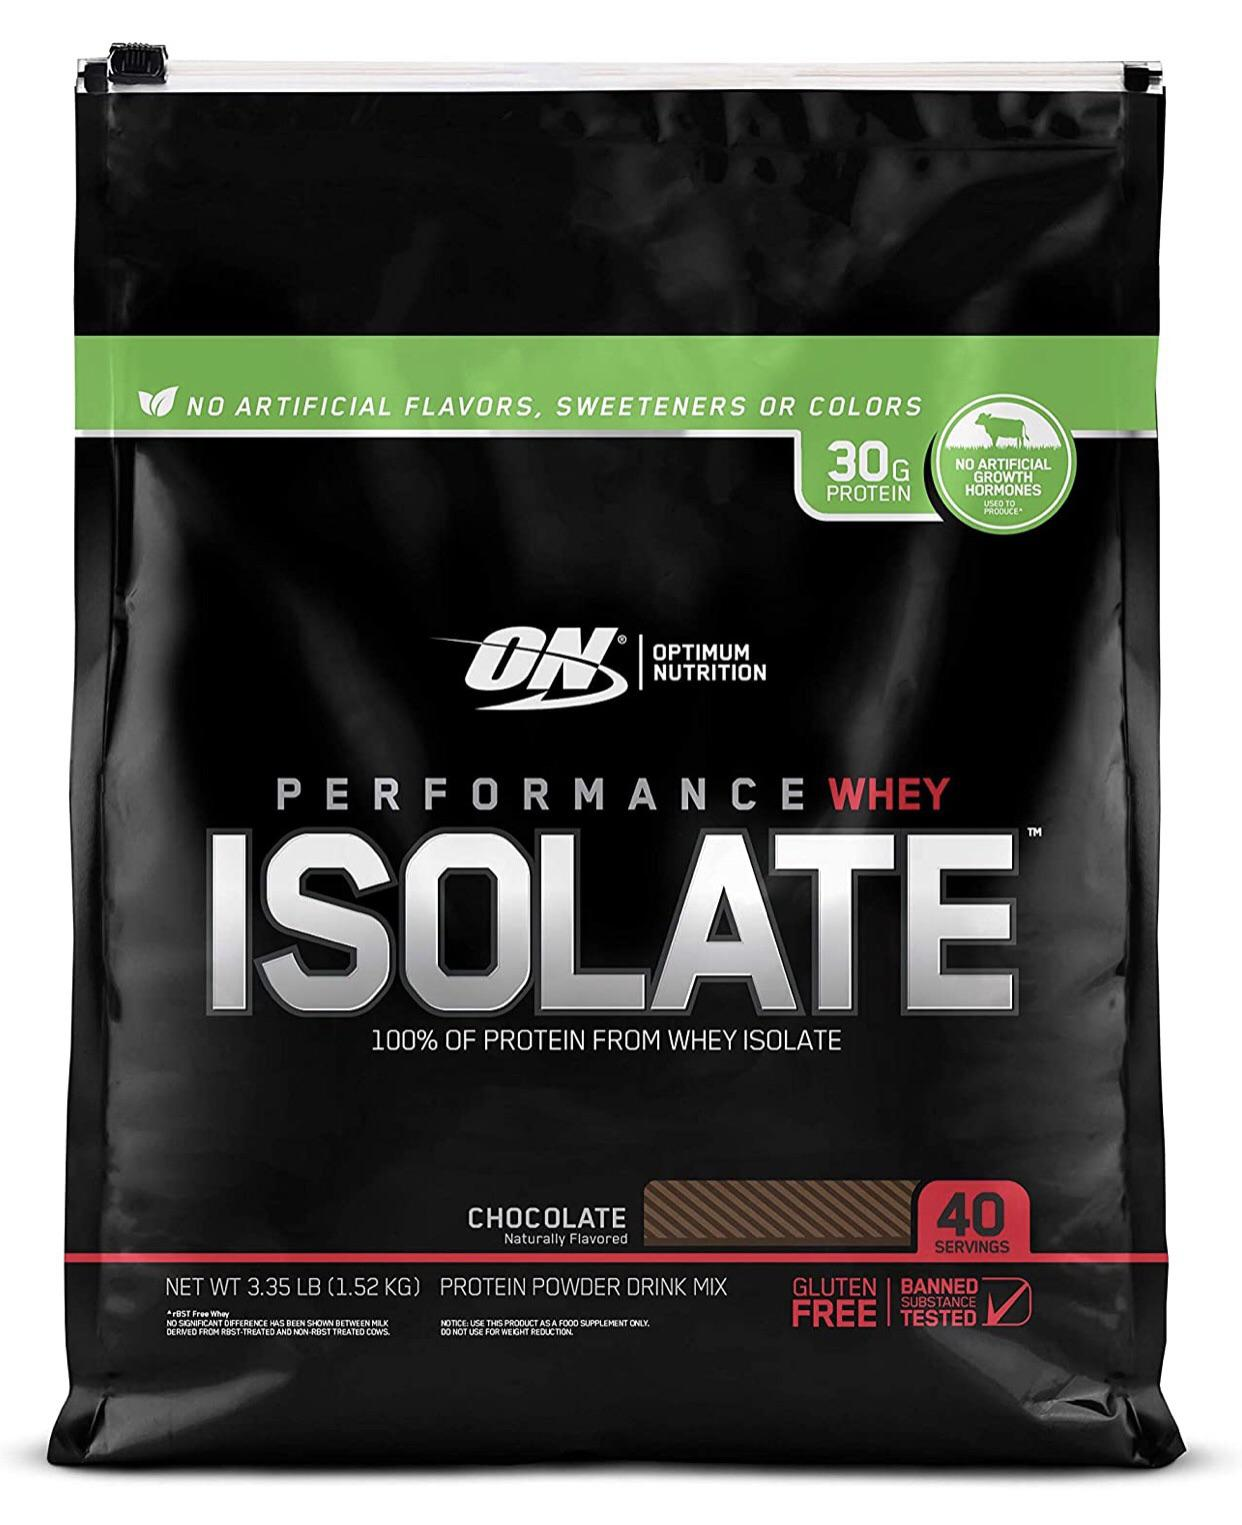 Costco Optimum Nutrition : costco, optimum, nutrition, Anyone, Happened, Product(Optimum, Nutrition, Performance, Isolate)?, Protein, Powder,, Would, Every, Month,